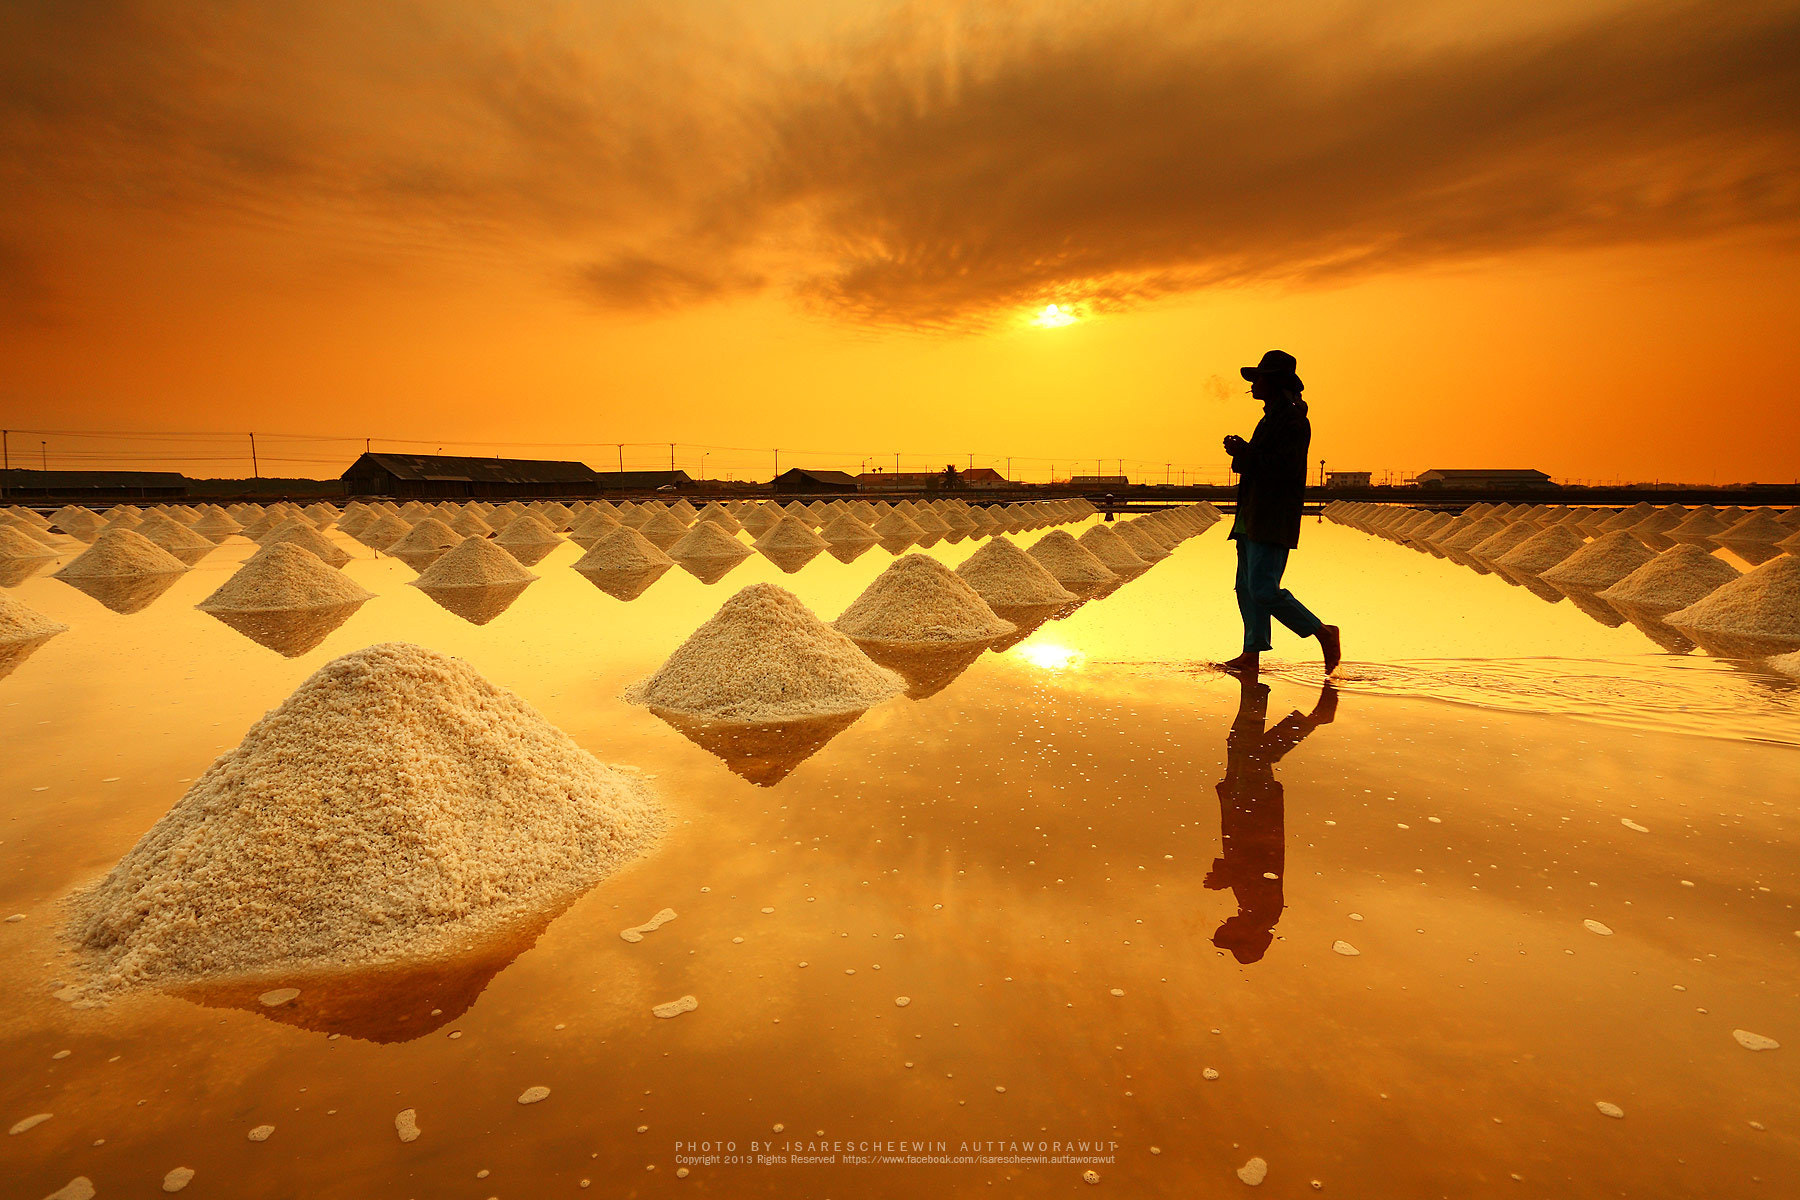 Photograph Salt fields, Phetchaburi, Thailand by isarescheewin auttaworawut on 500px